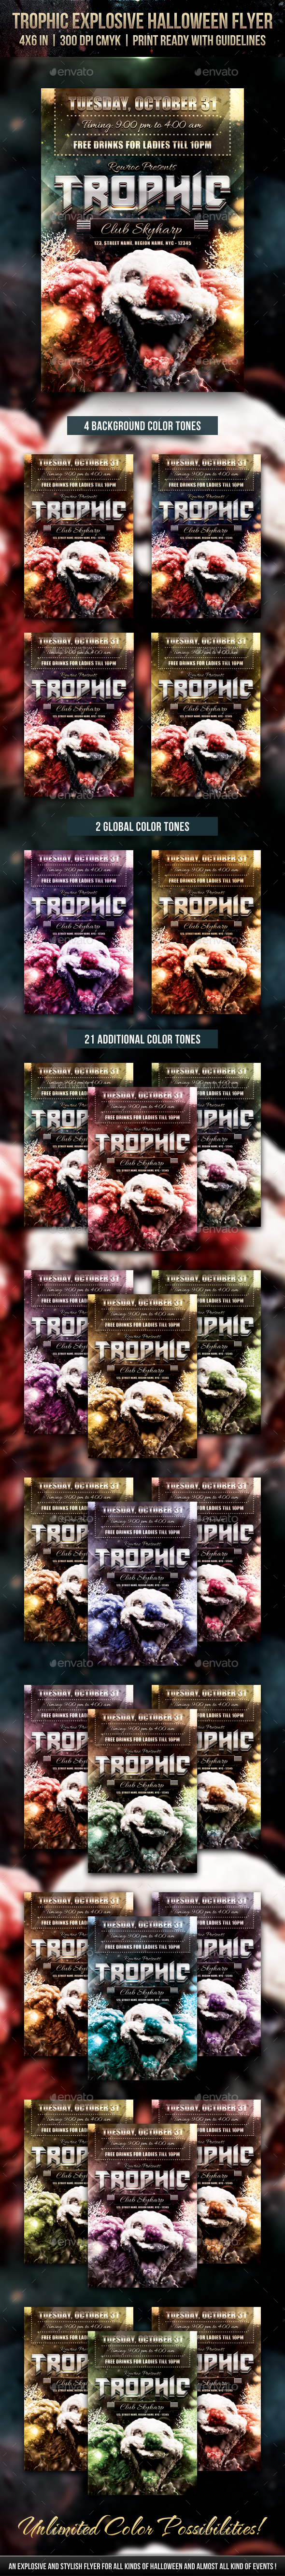 Trophic Explosive Halloween Flyer - Holidays Events